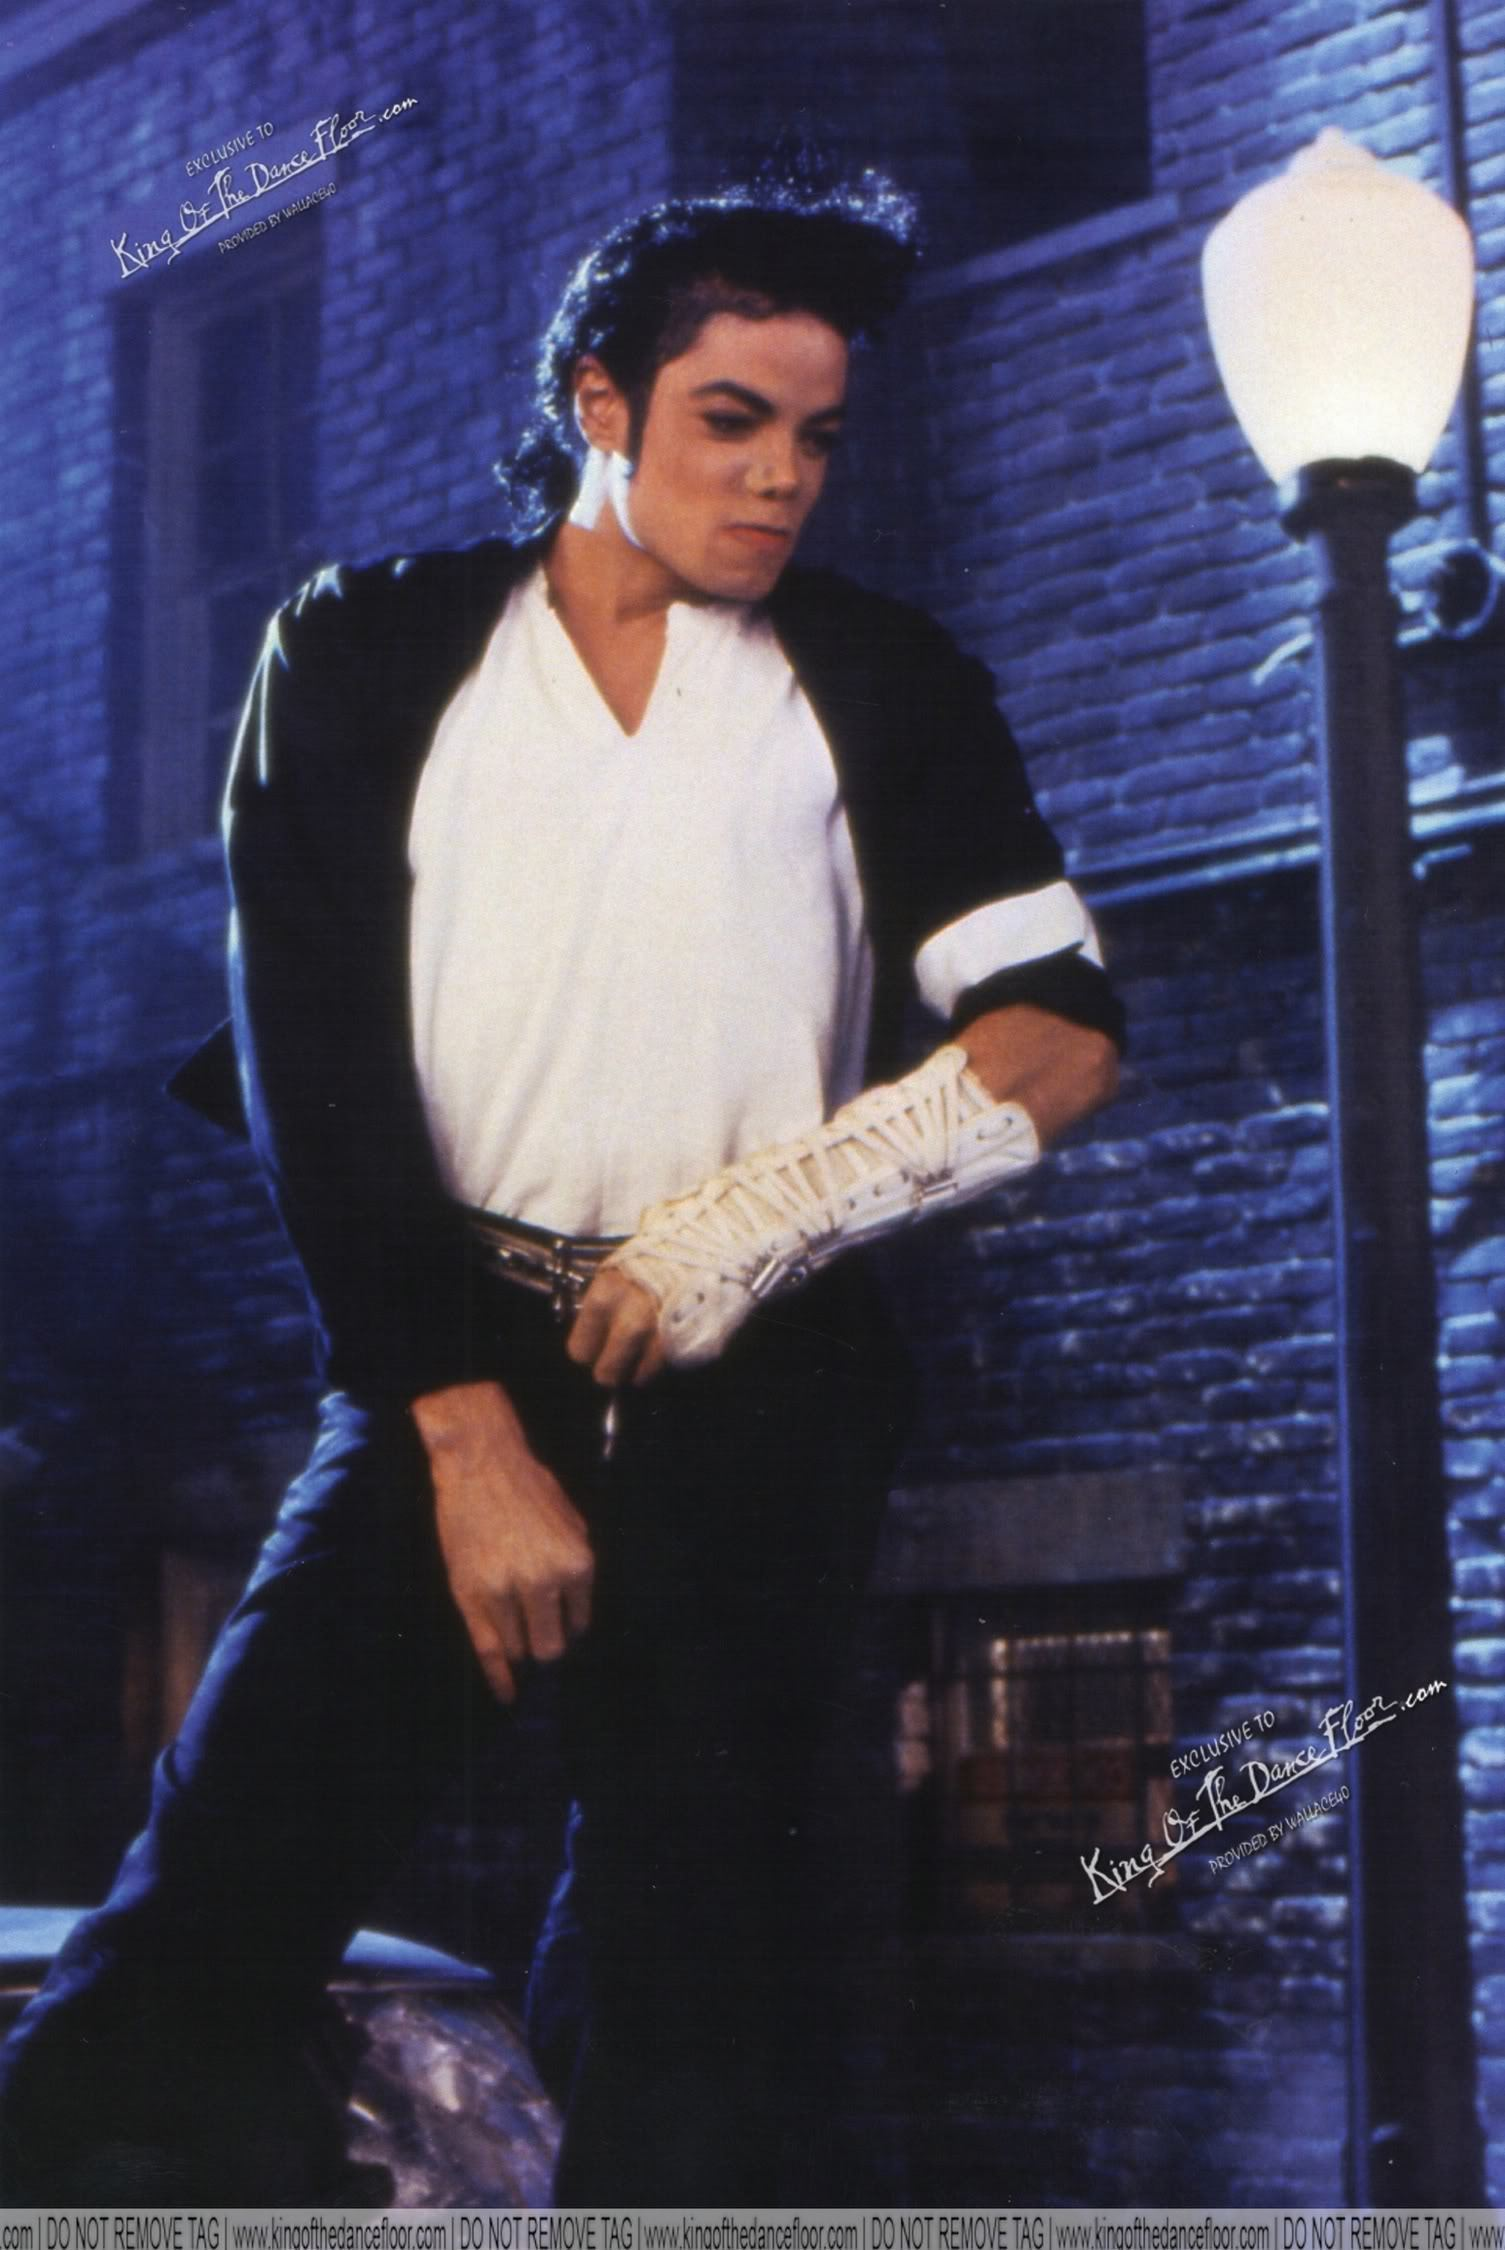 the boy a photographic essay michael jackson The books that michael jackson loved or inspirational, poetry, biographies, photography / michael jackson's library: favorite books a young boy discovers.